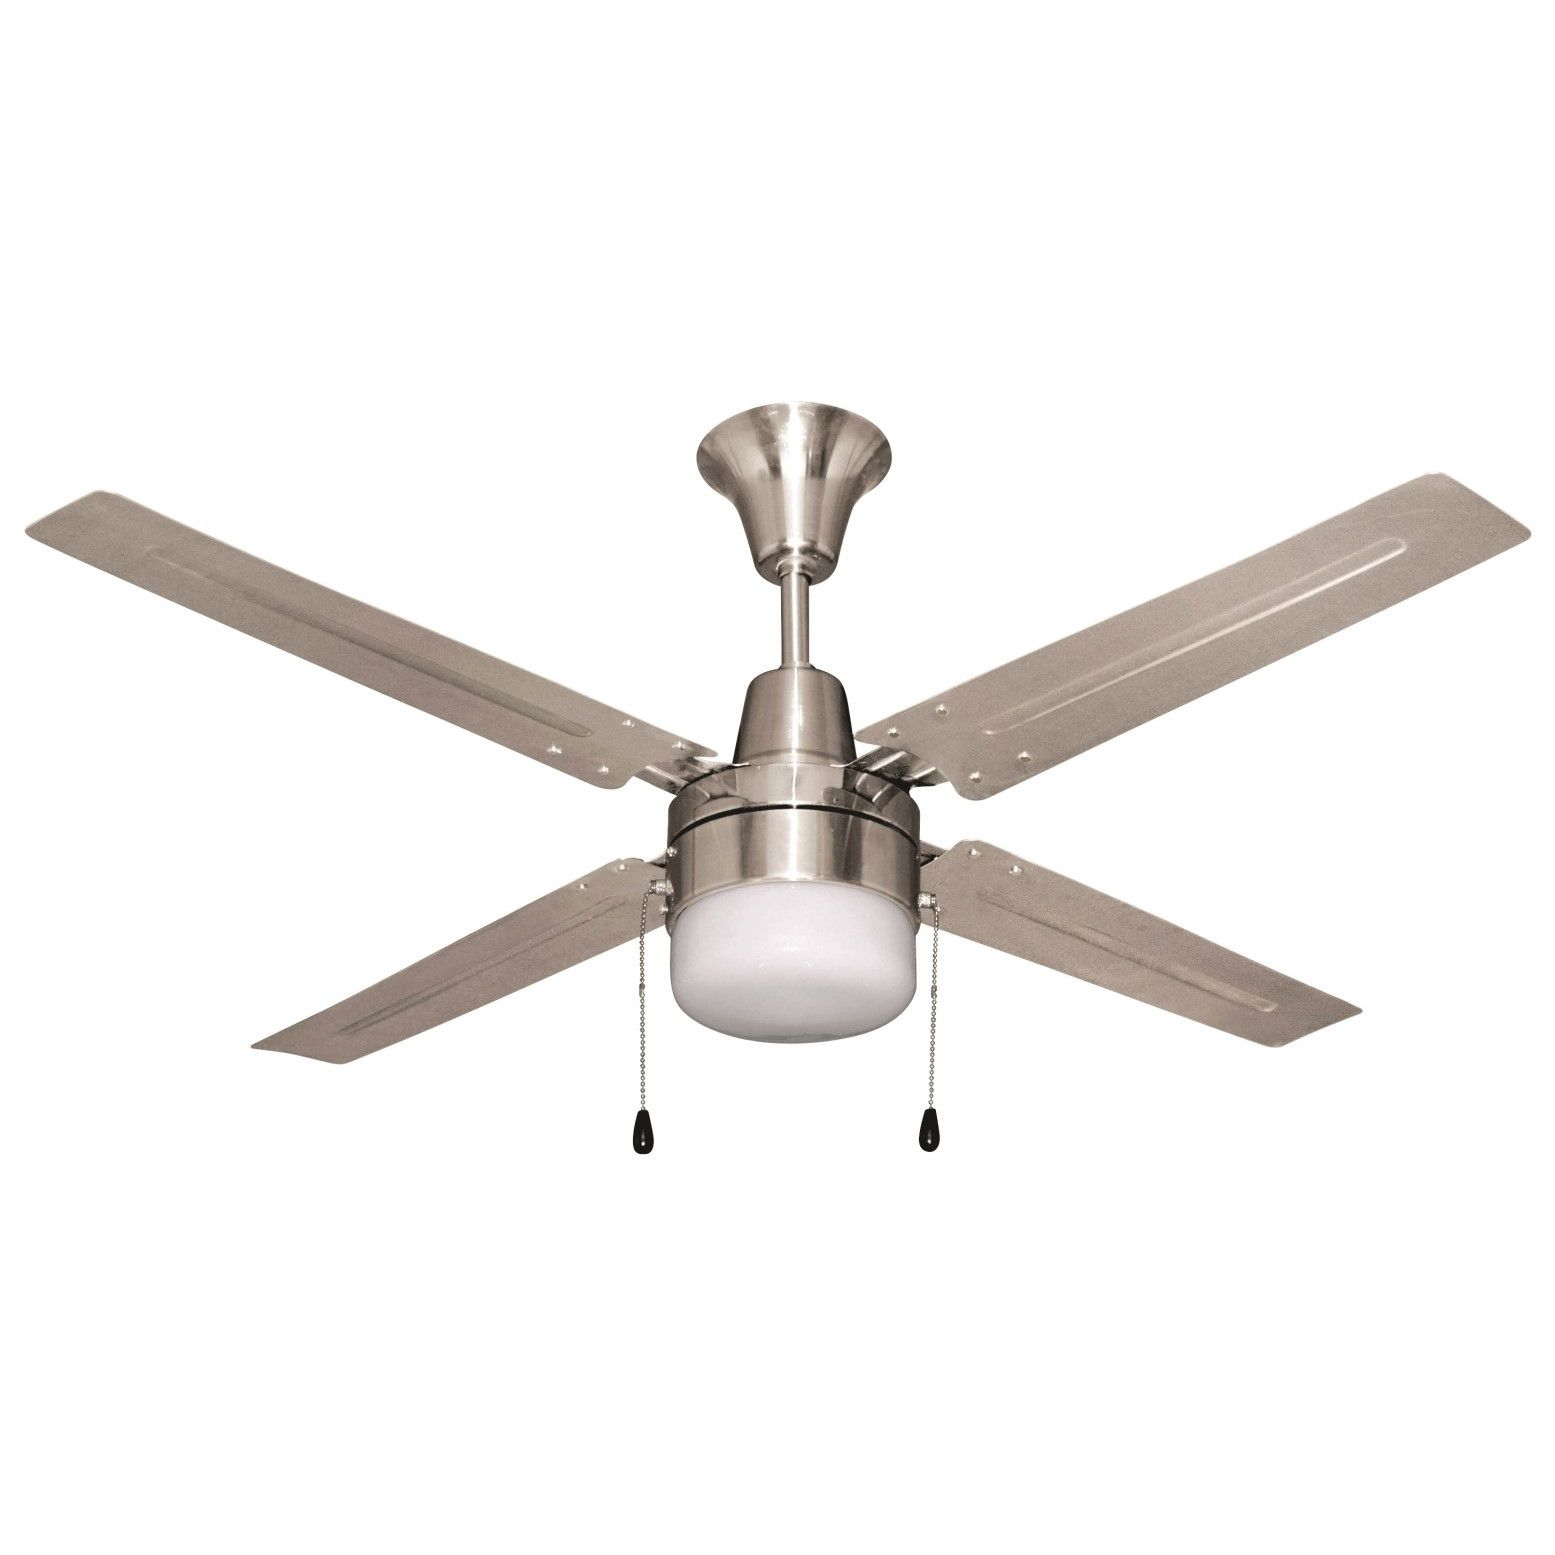 Hunter douglas exhaust fans httponlinecompliancefo hunter douglas exhaust fans hunter fan has really been in the business of producing quality made ceiling fan since the primary hunter fan units are aloadofball Choice Image